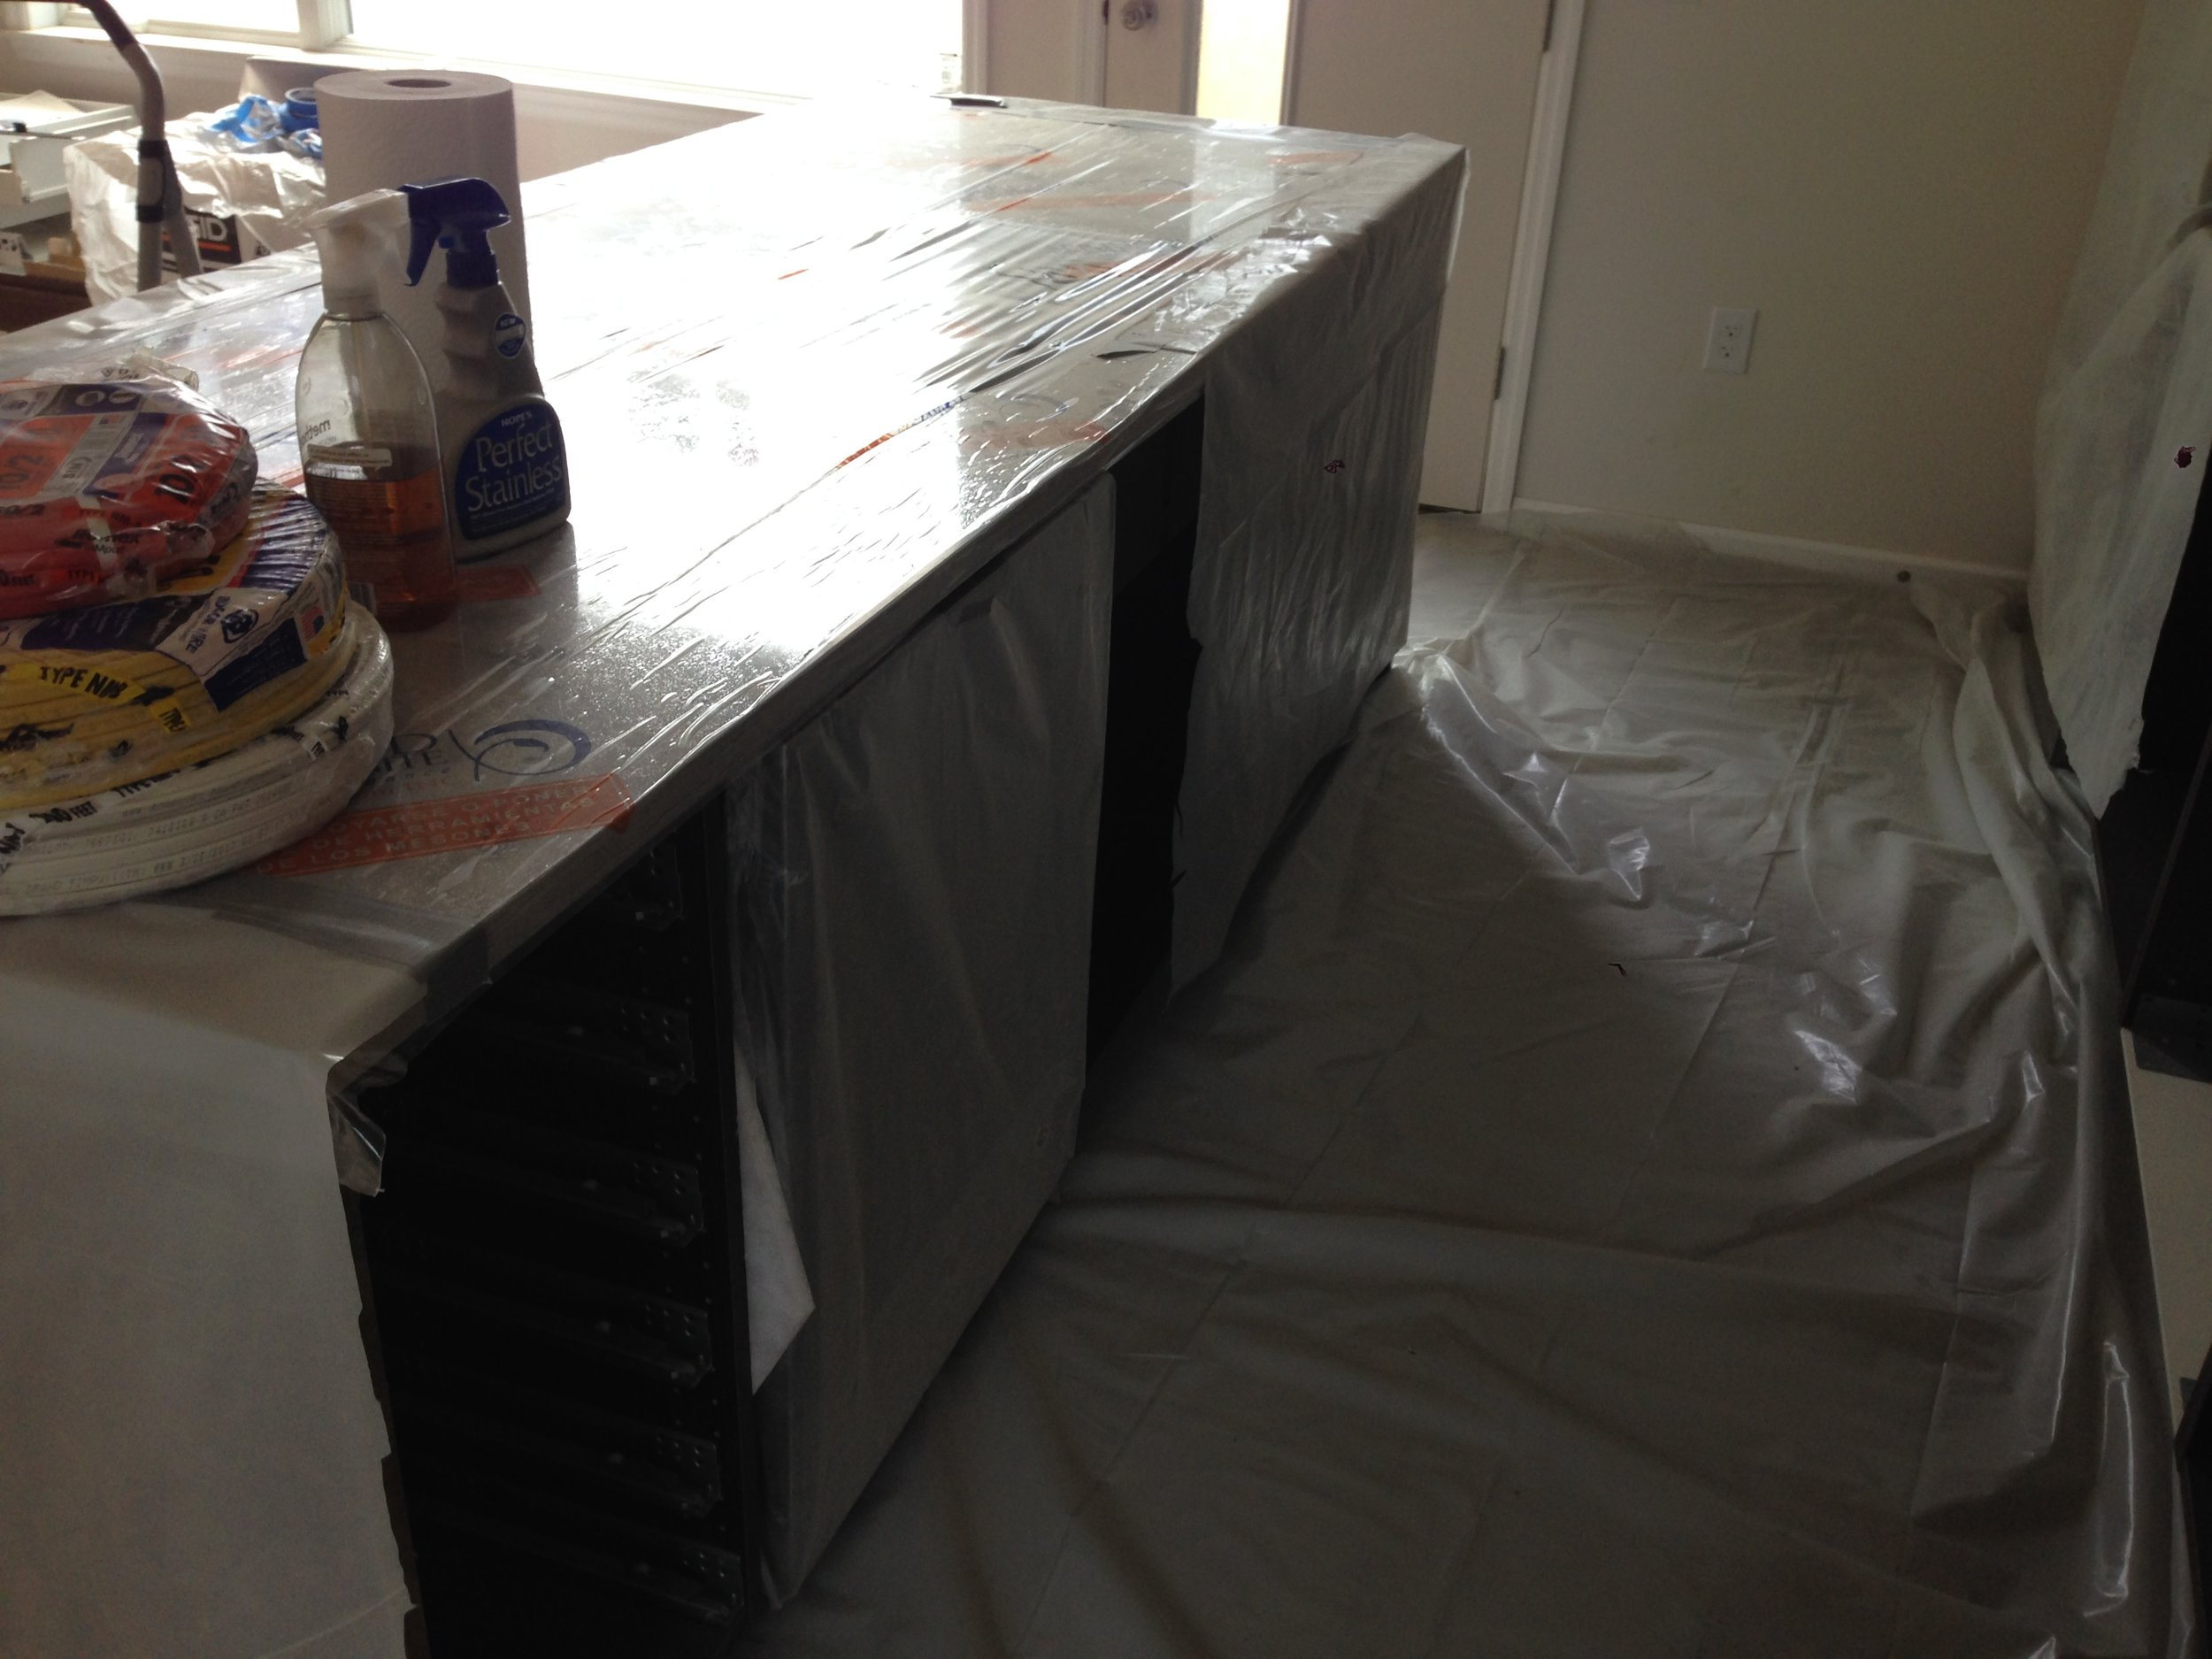 Dishwasher fits under the counter! Progress!